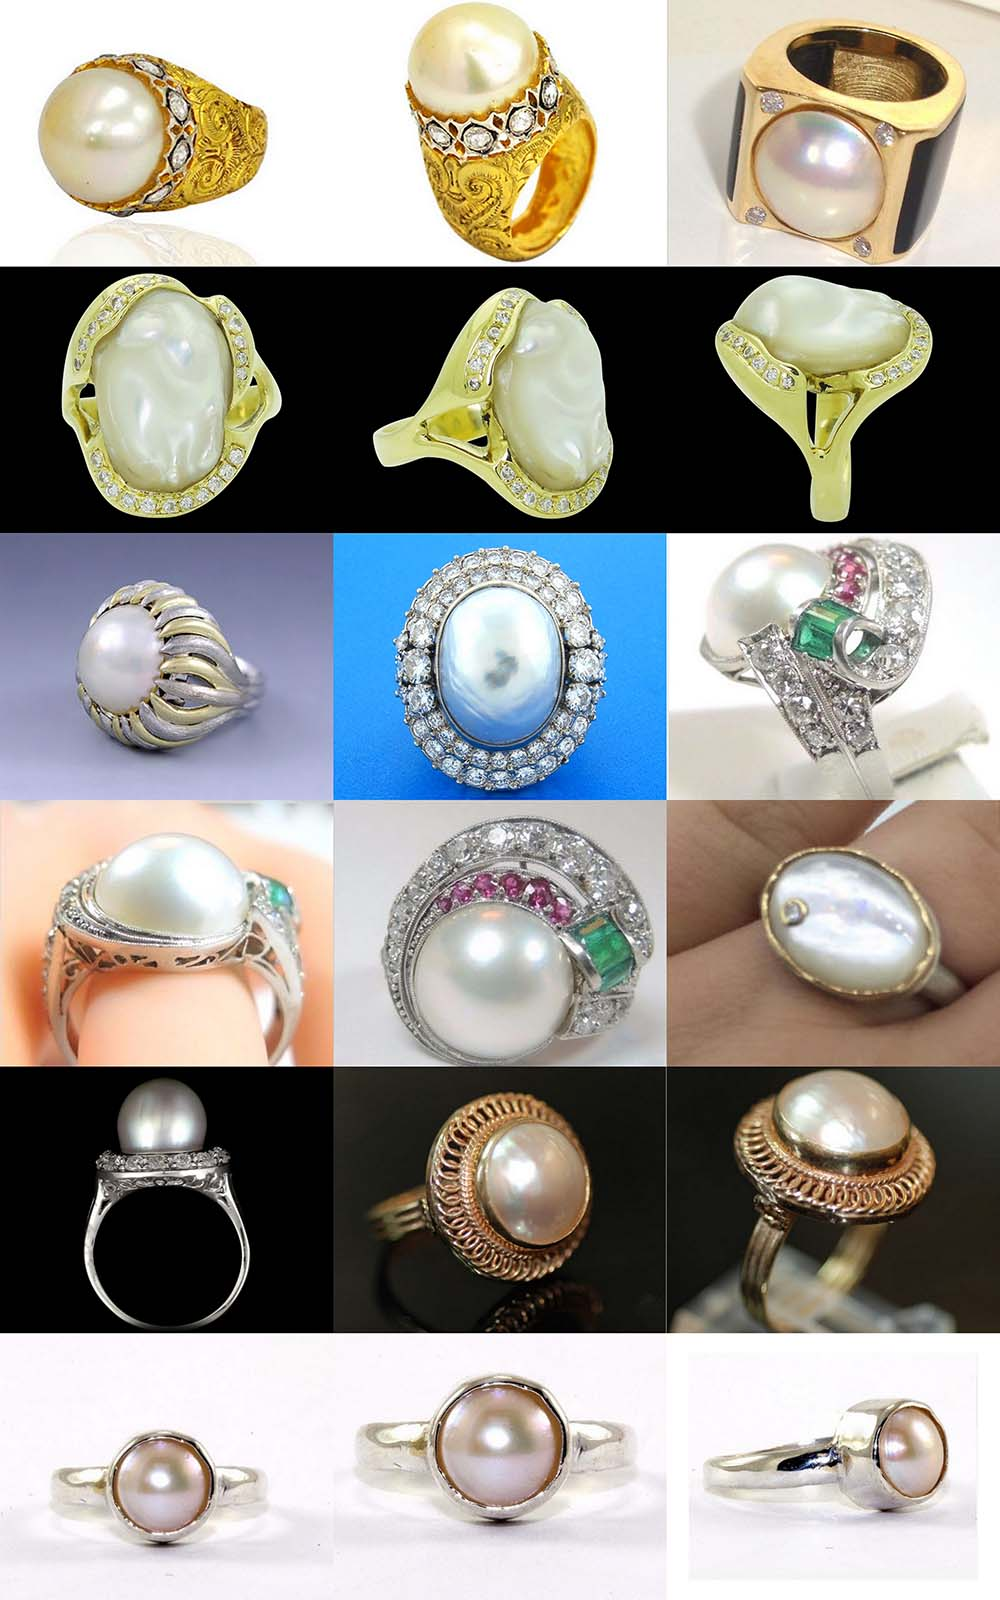 Astrogems can make ayurvedic astrological pearl rings in any style.